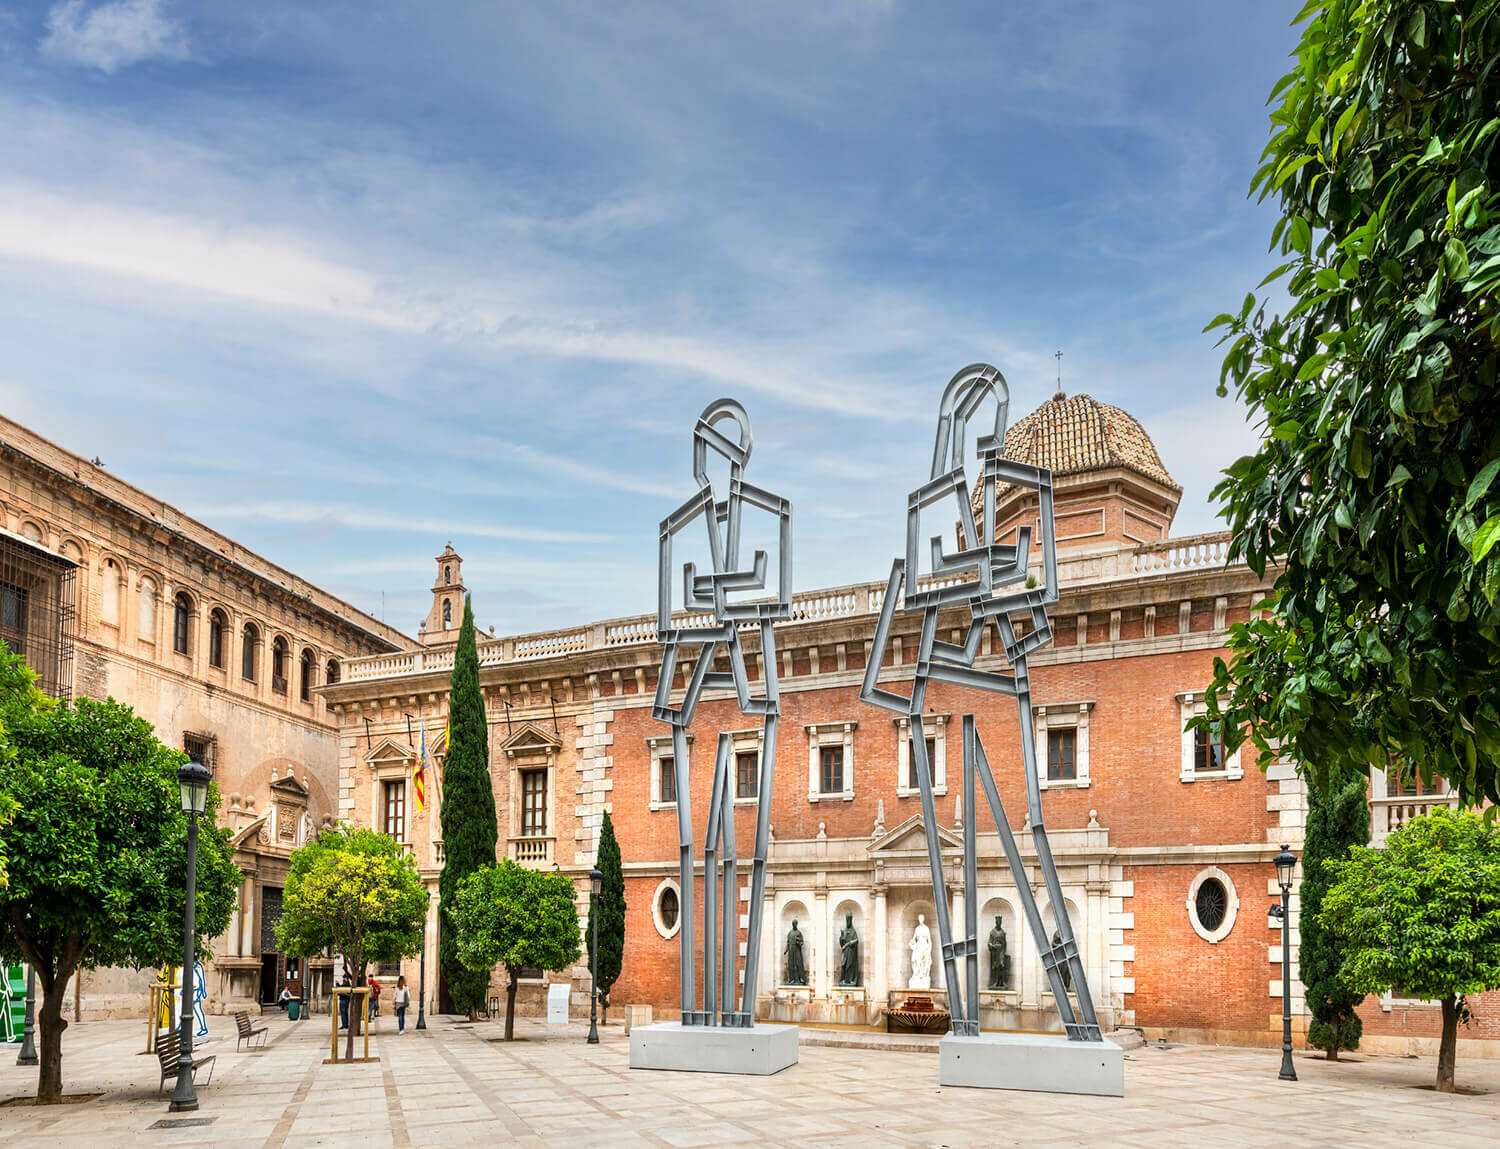 Julian Opie sculptures are currently on display around the city of Valencia